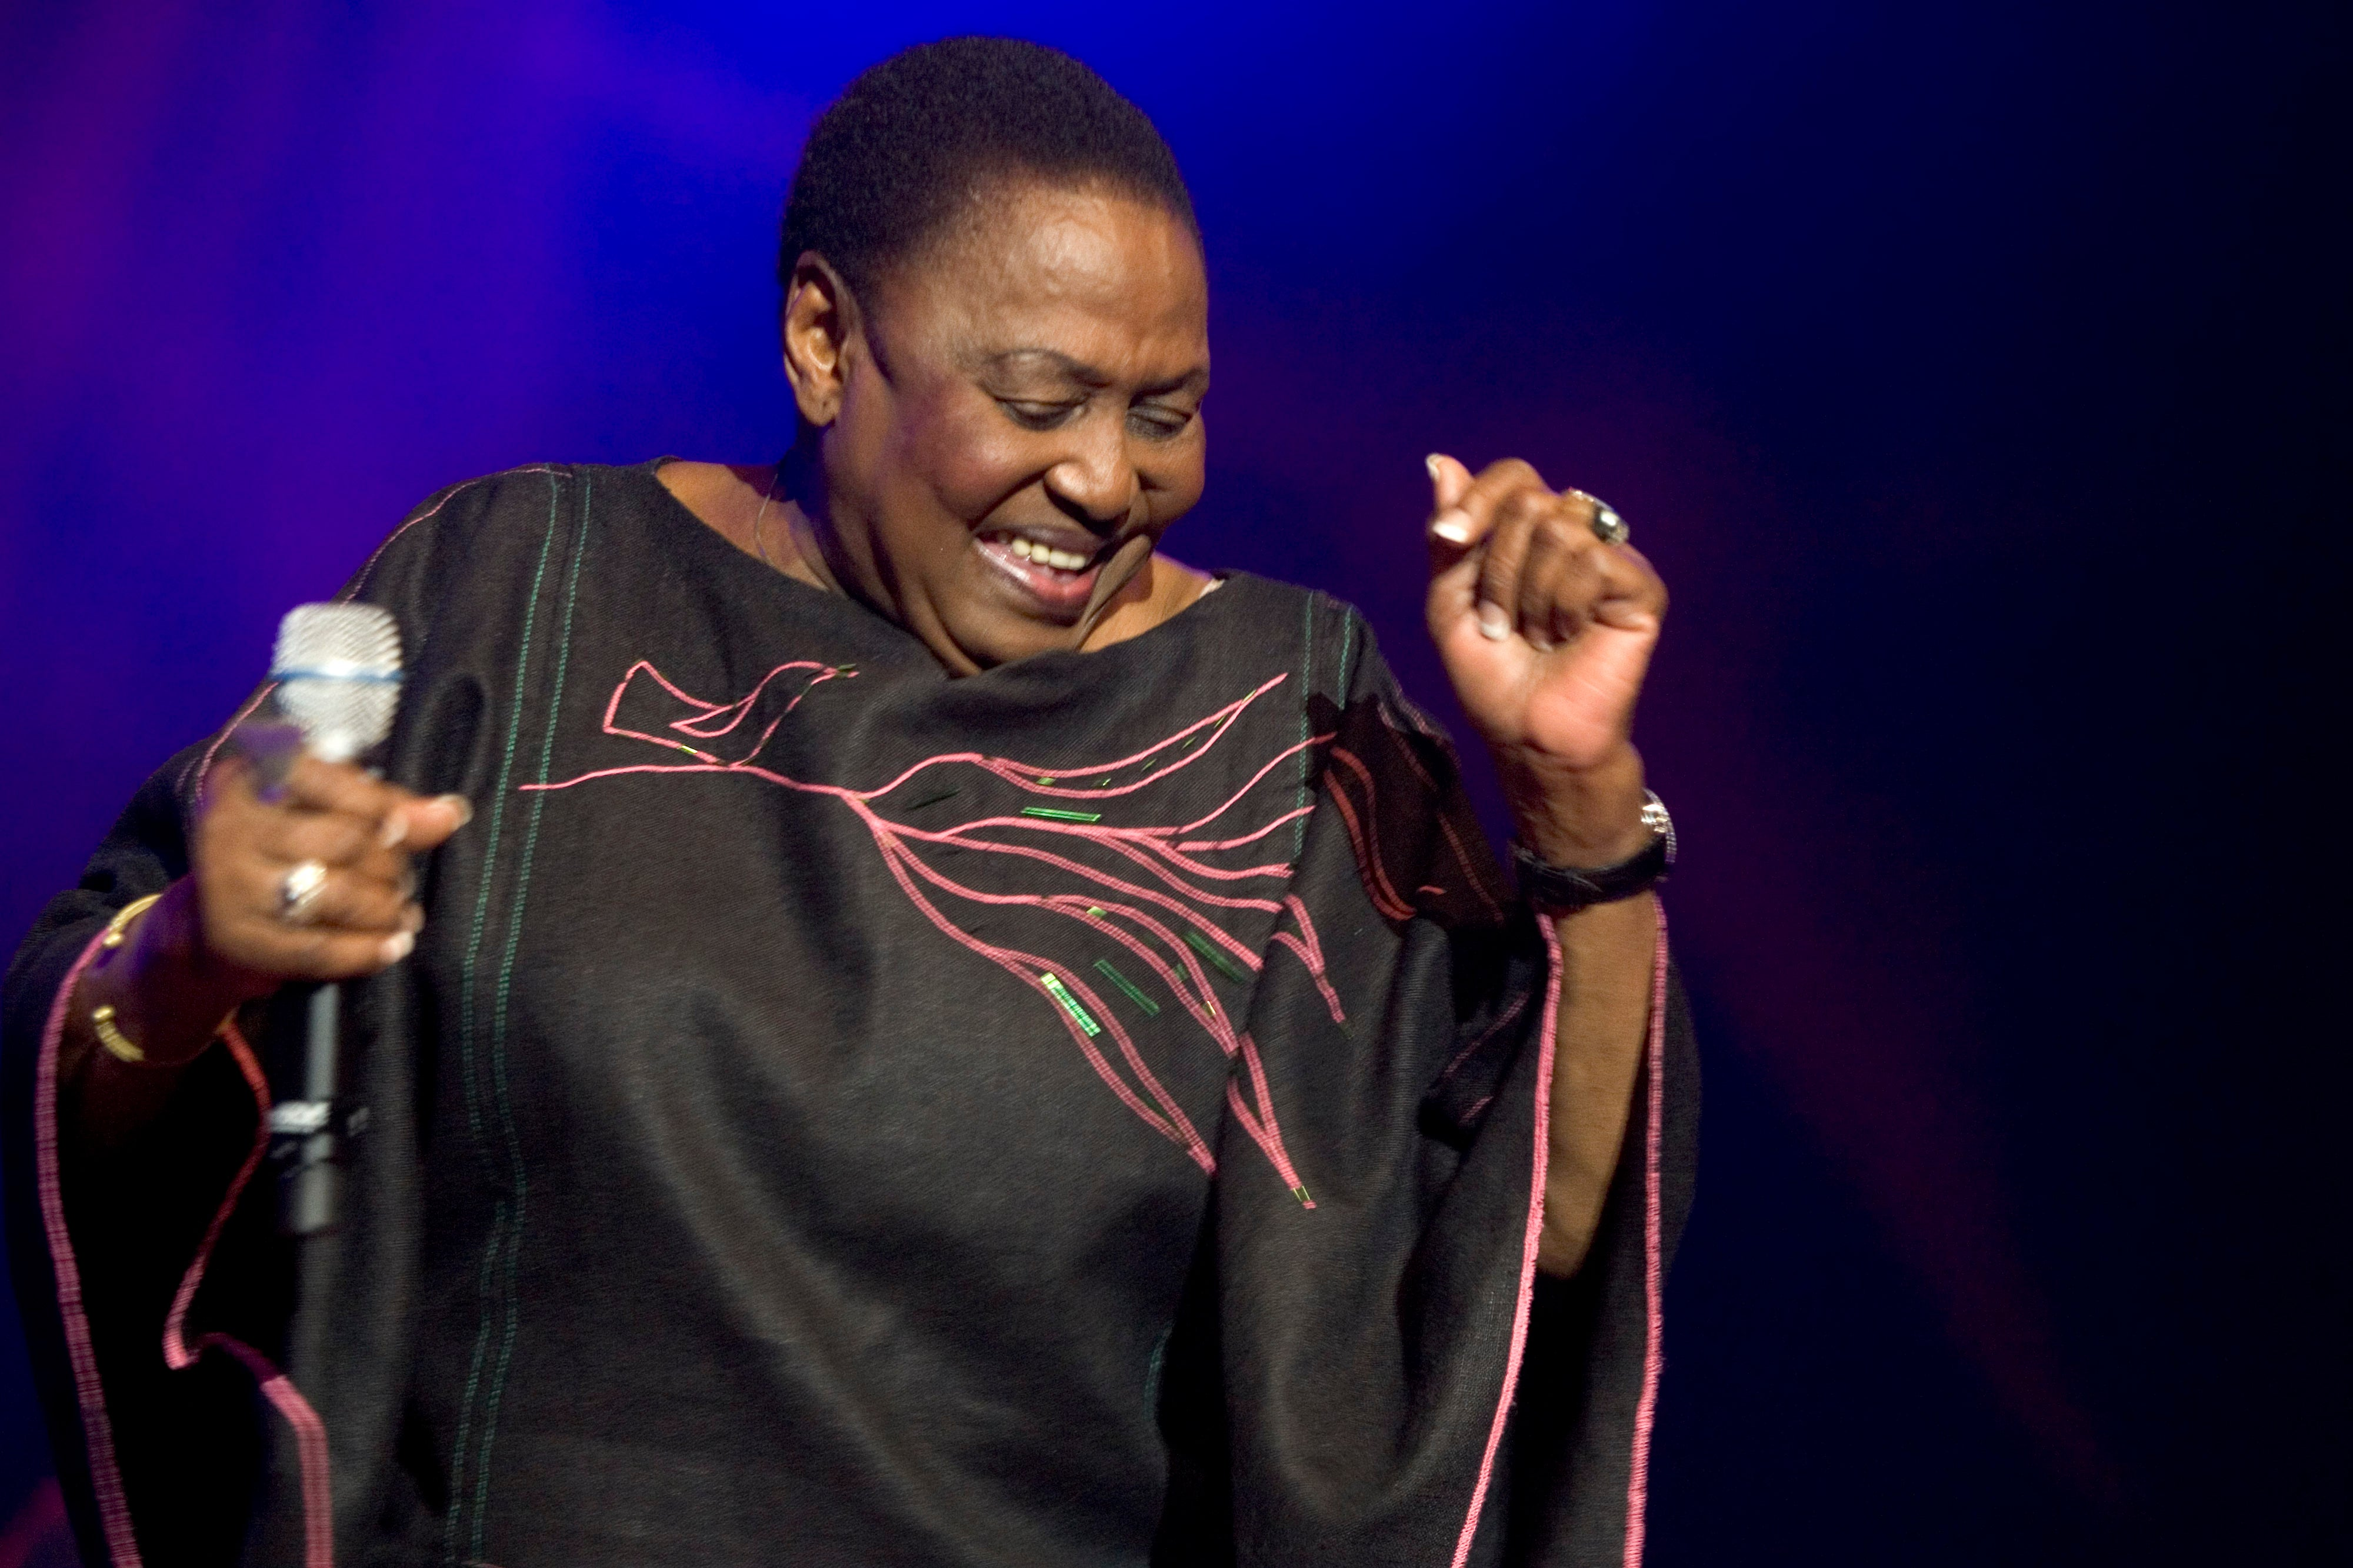 A Biopic Of Legendary South African Singer Miriam Makeba Is On The Way